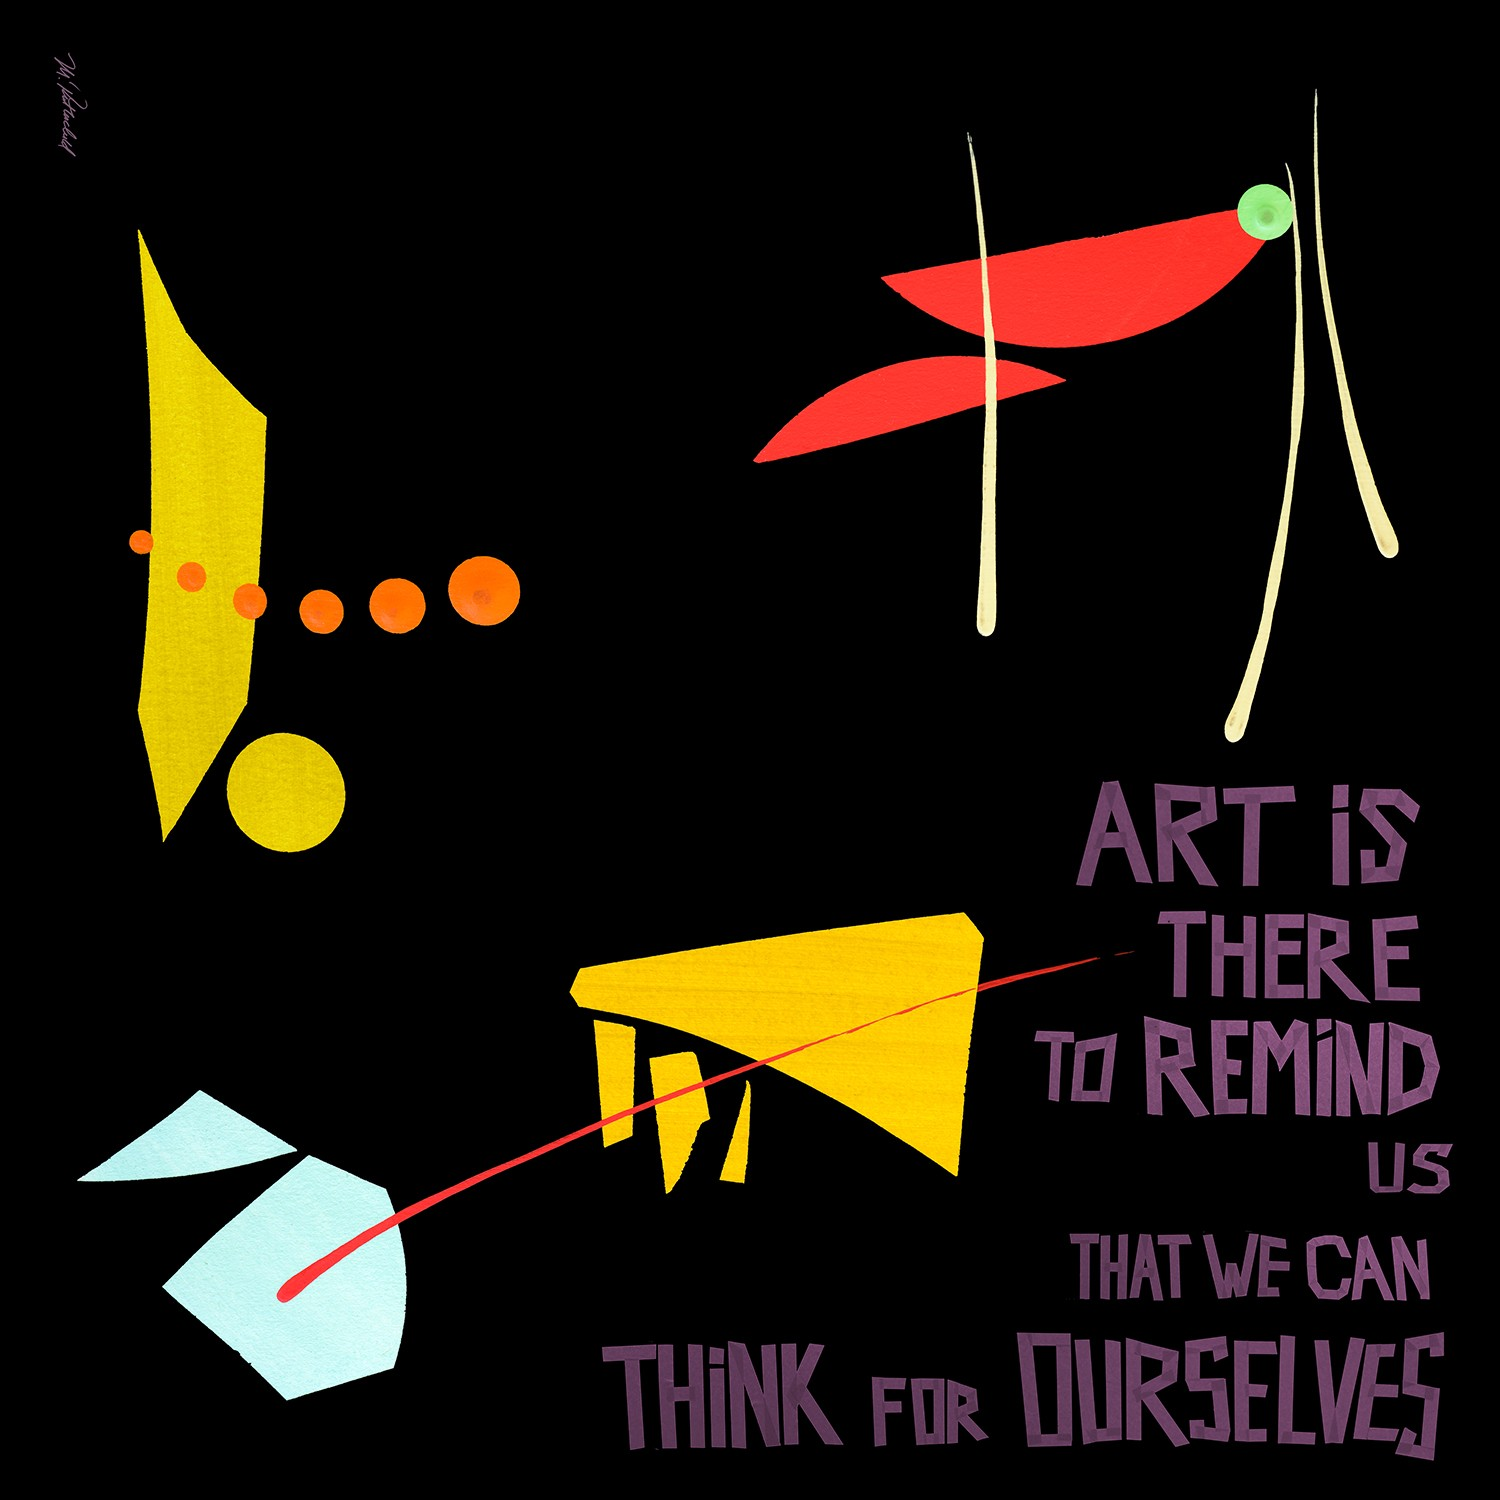 ART IS THERE TO REMIND US THAT WE CAN THINK FOR OURSELVES